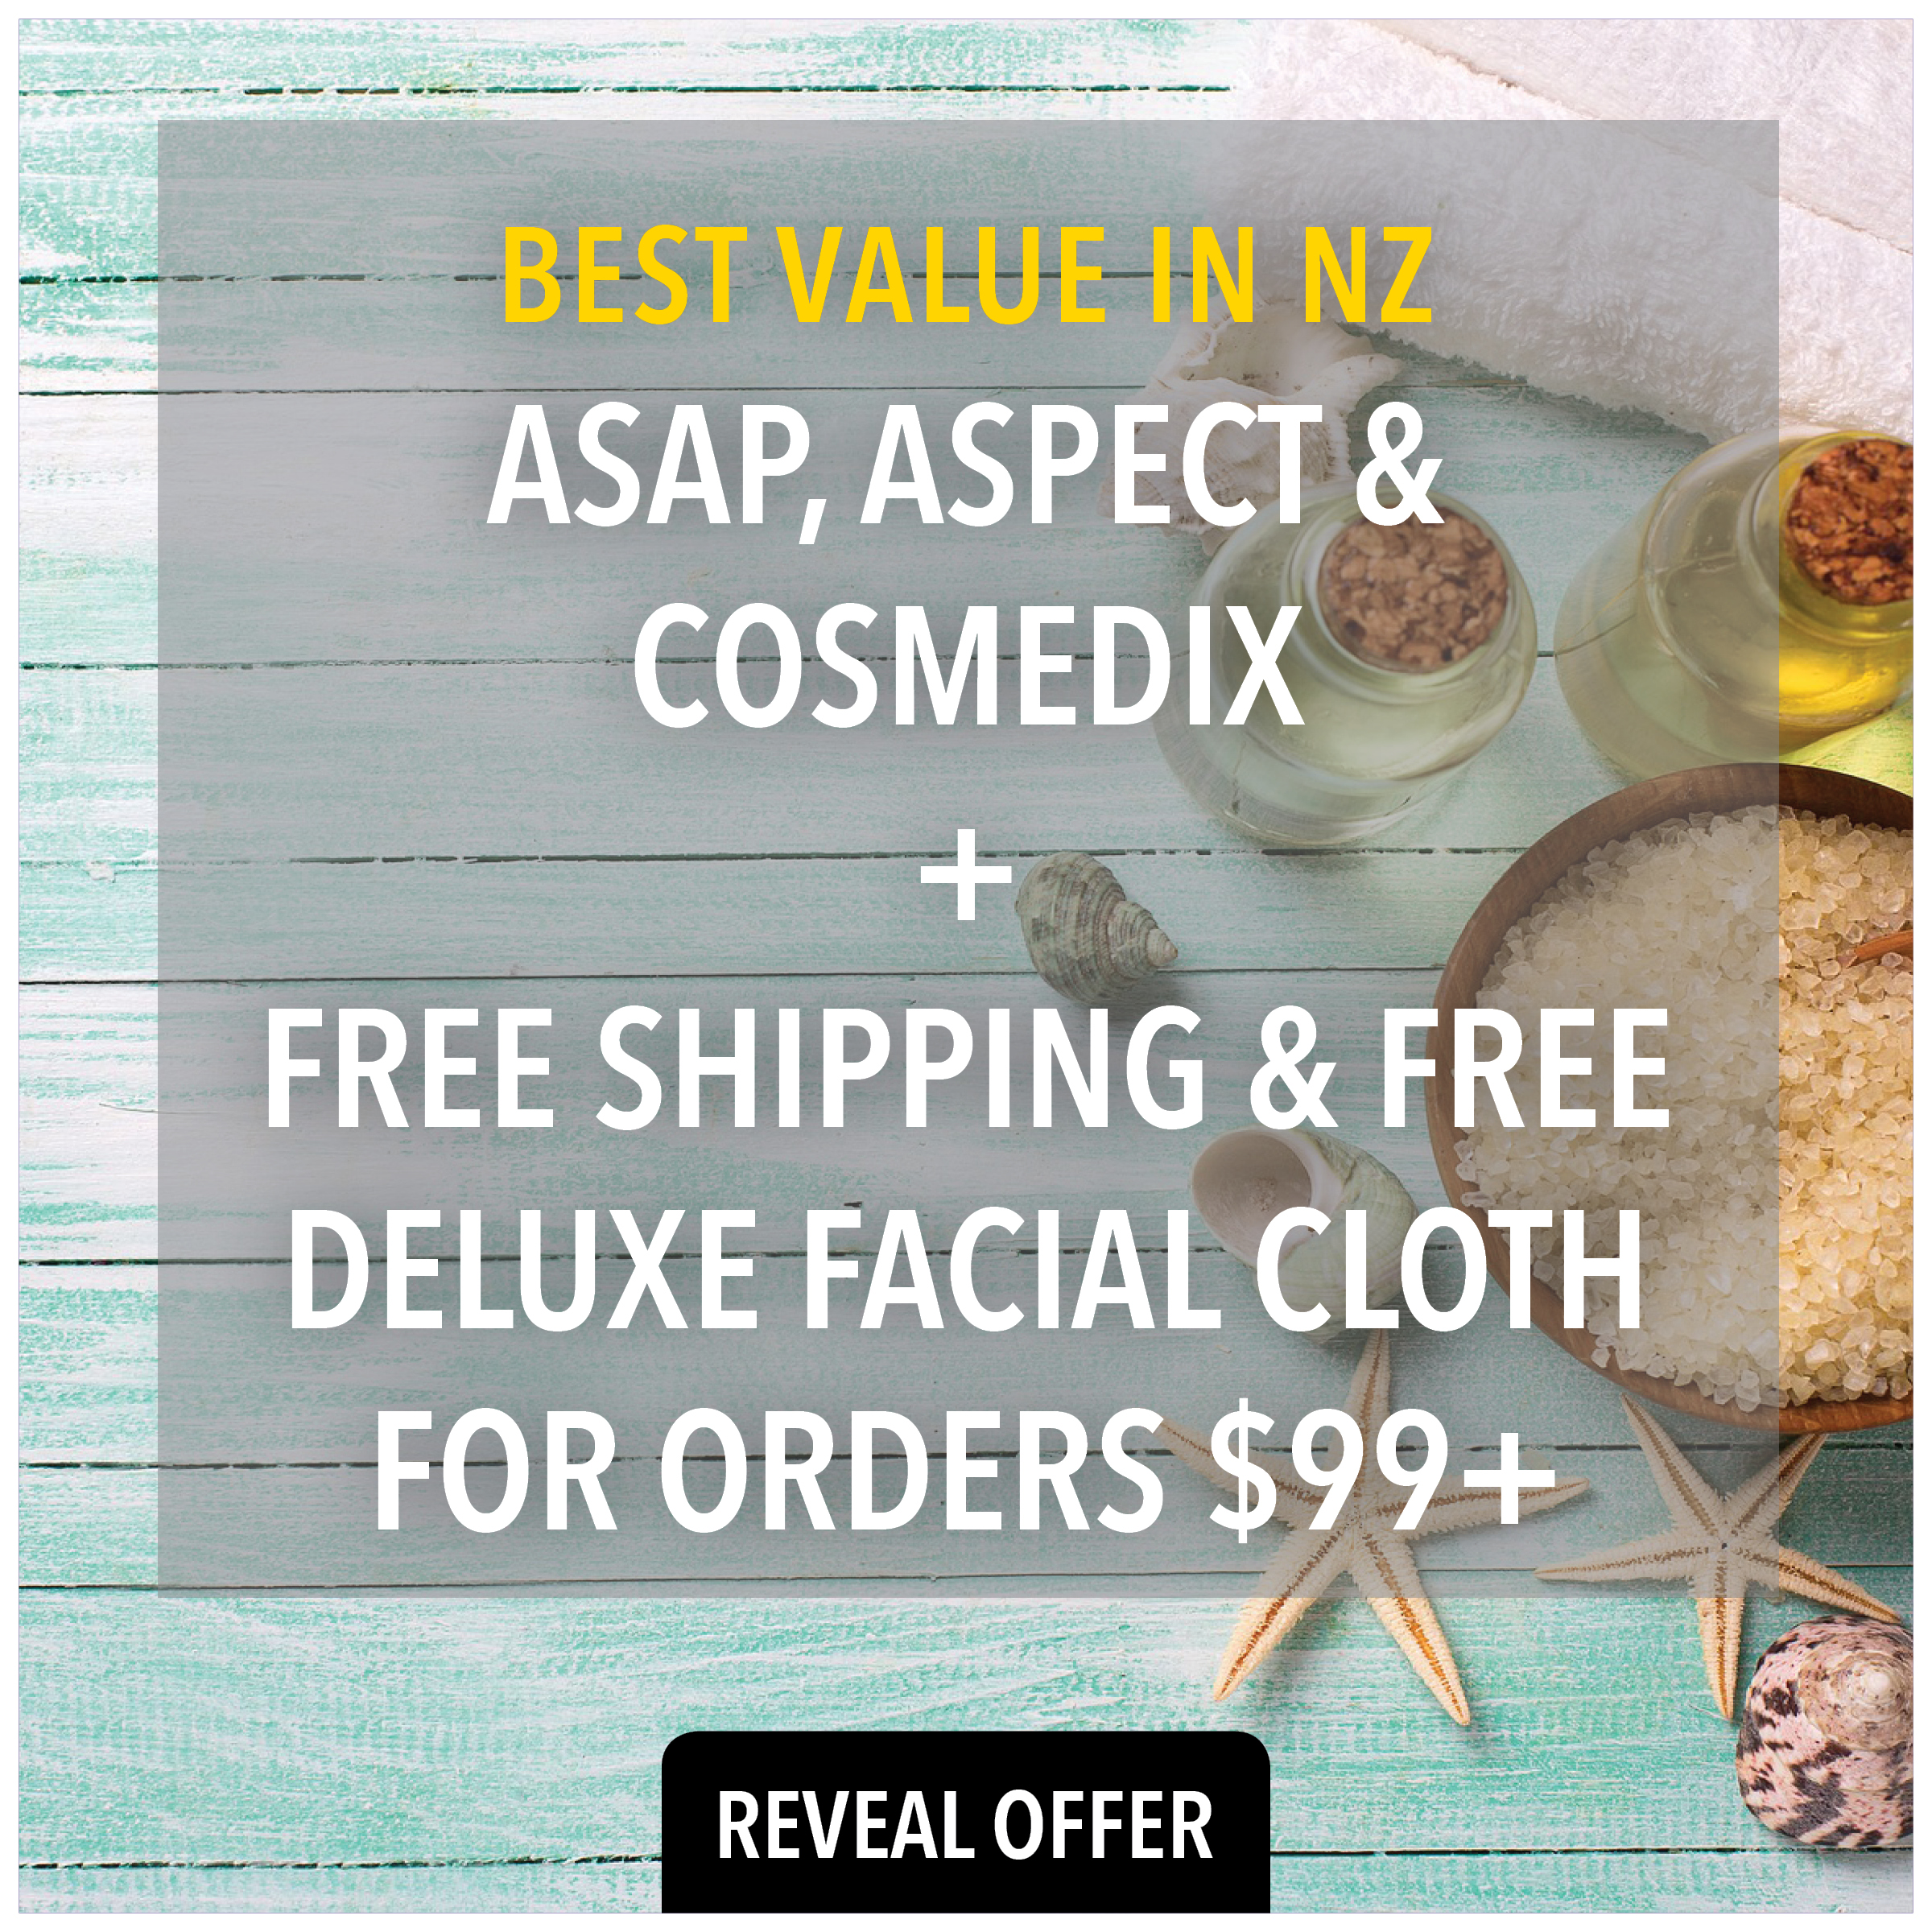 buy asap skincare, aspect skincare and cosmedix skincare from Prodermal NZ